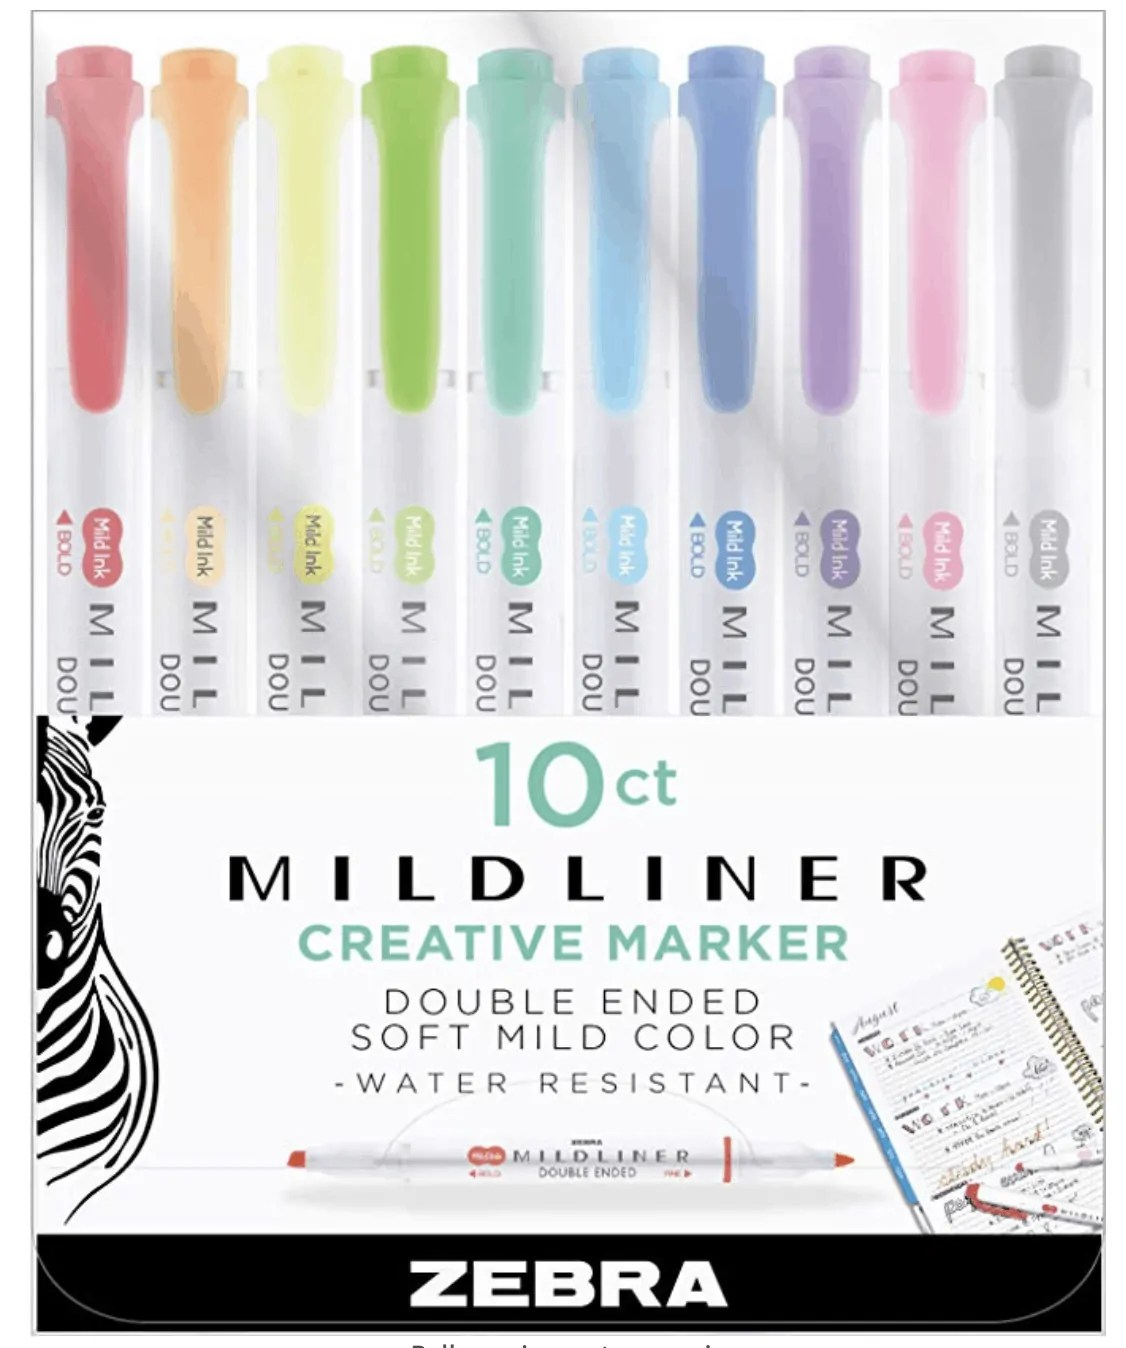 Zebra Mid-Liner Highlighters